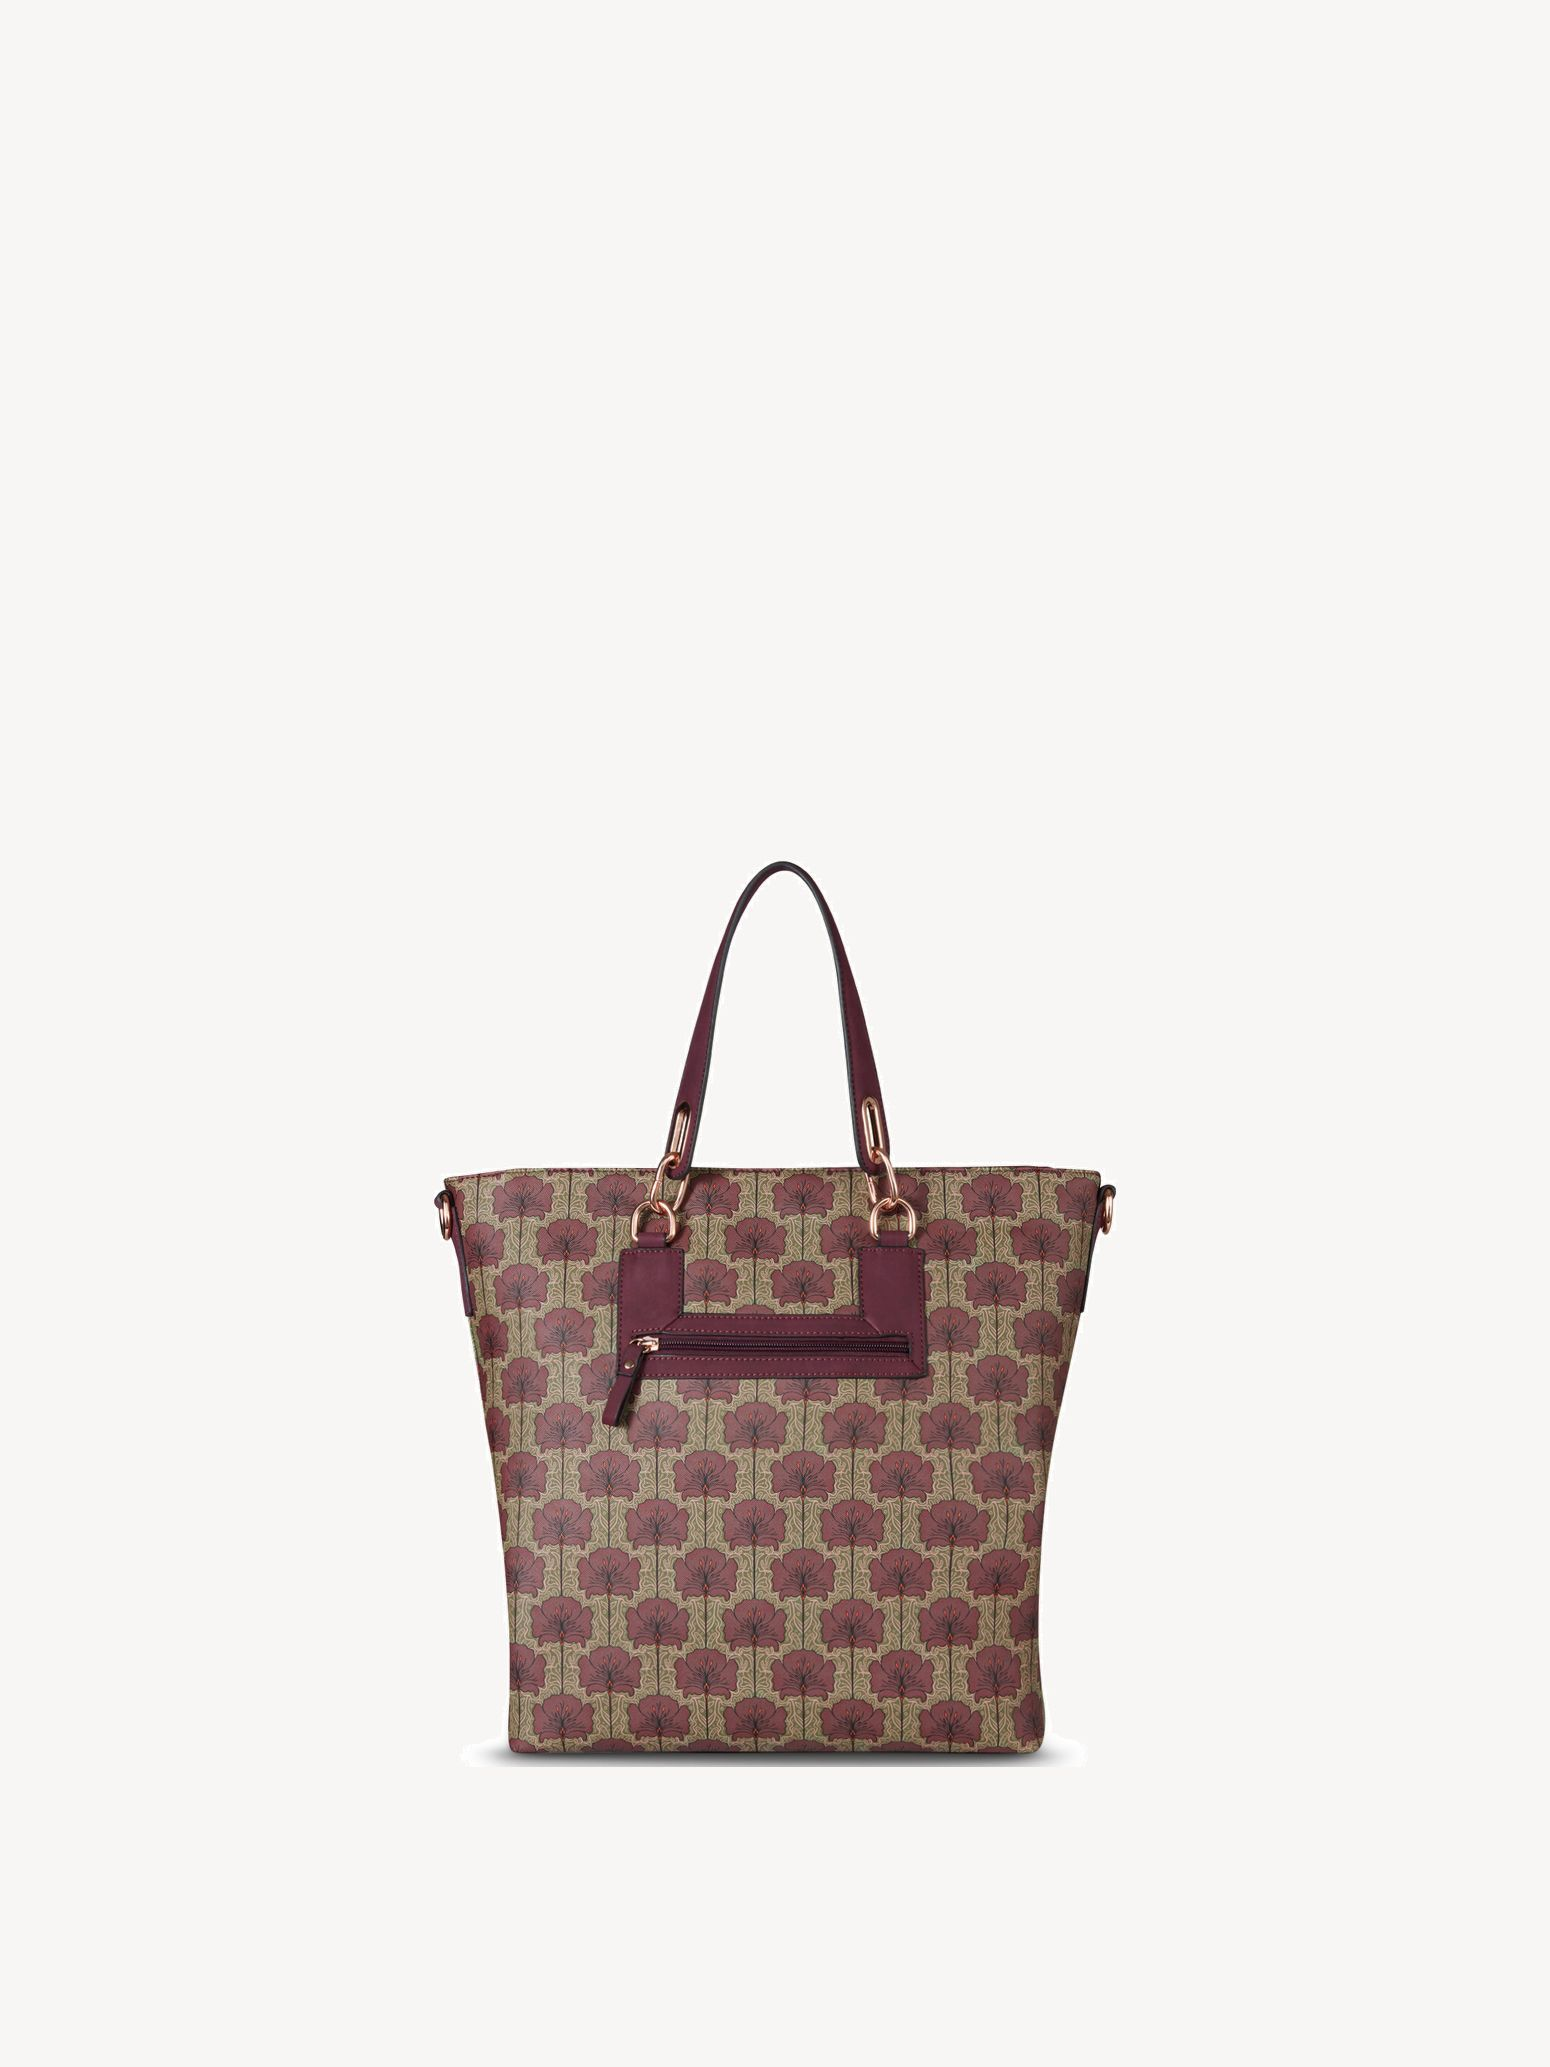 Shopping bag, bordeaux comb, hi-res